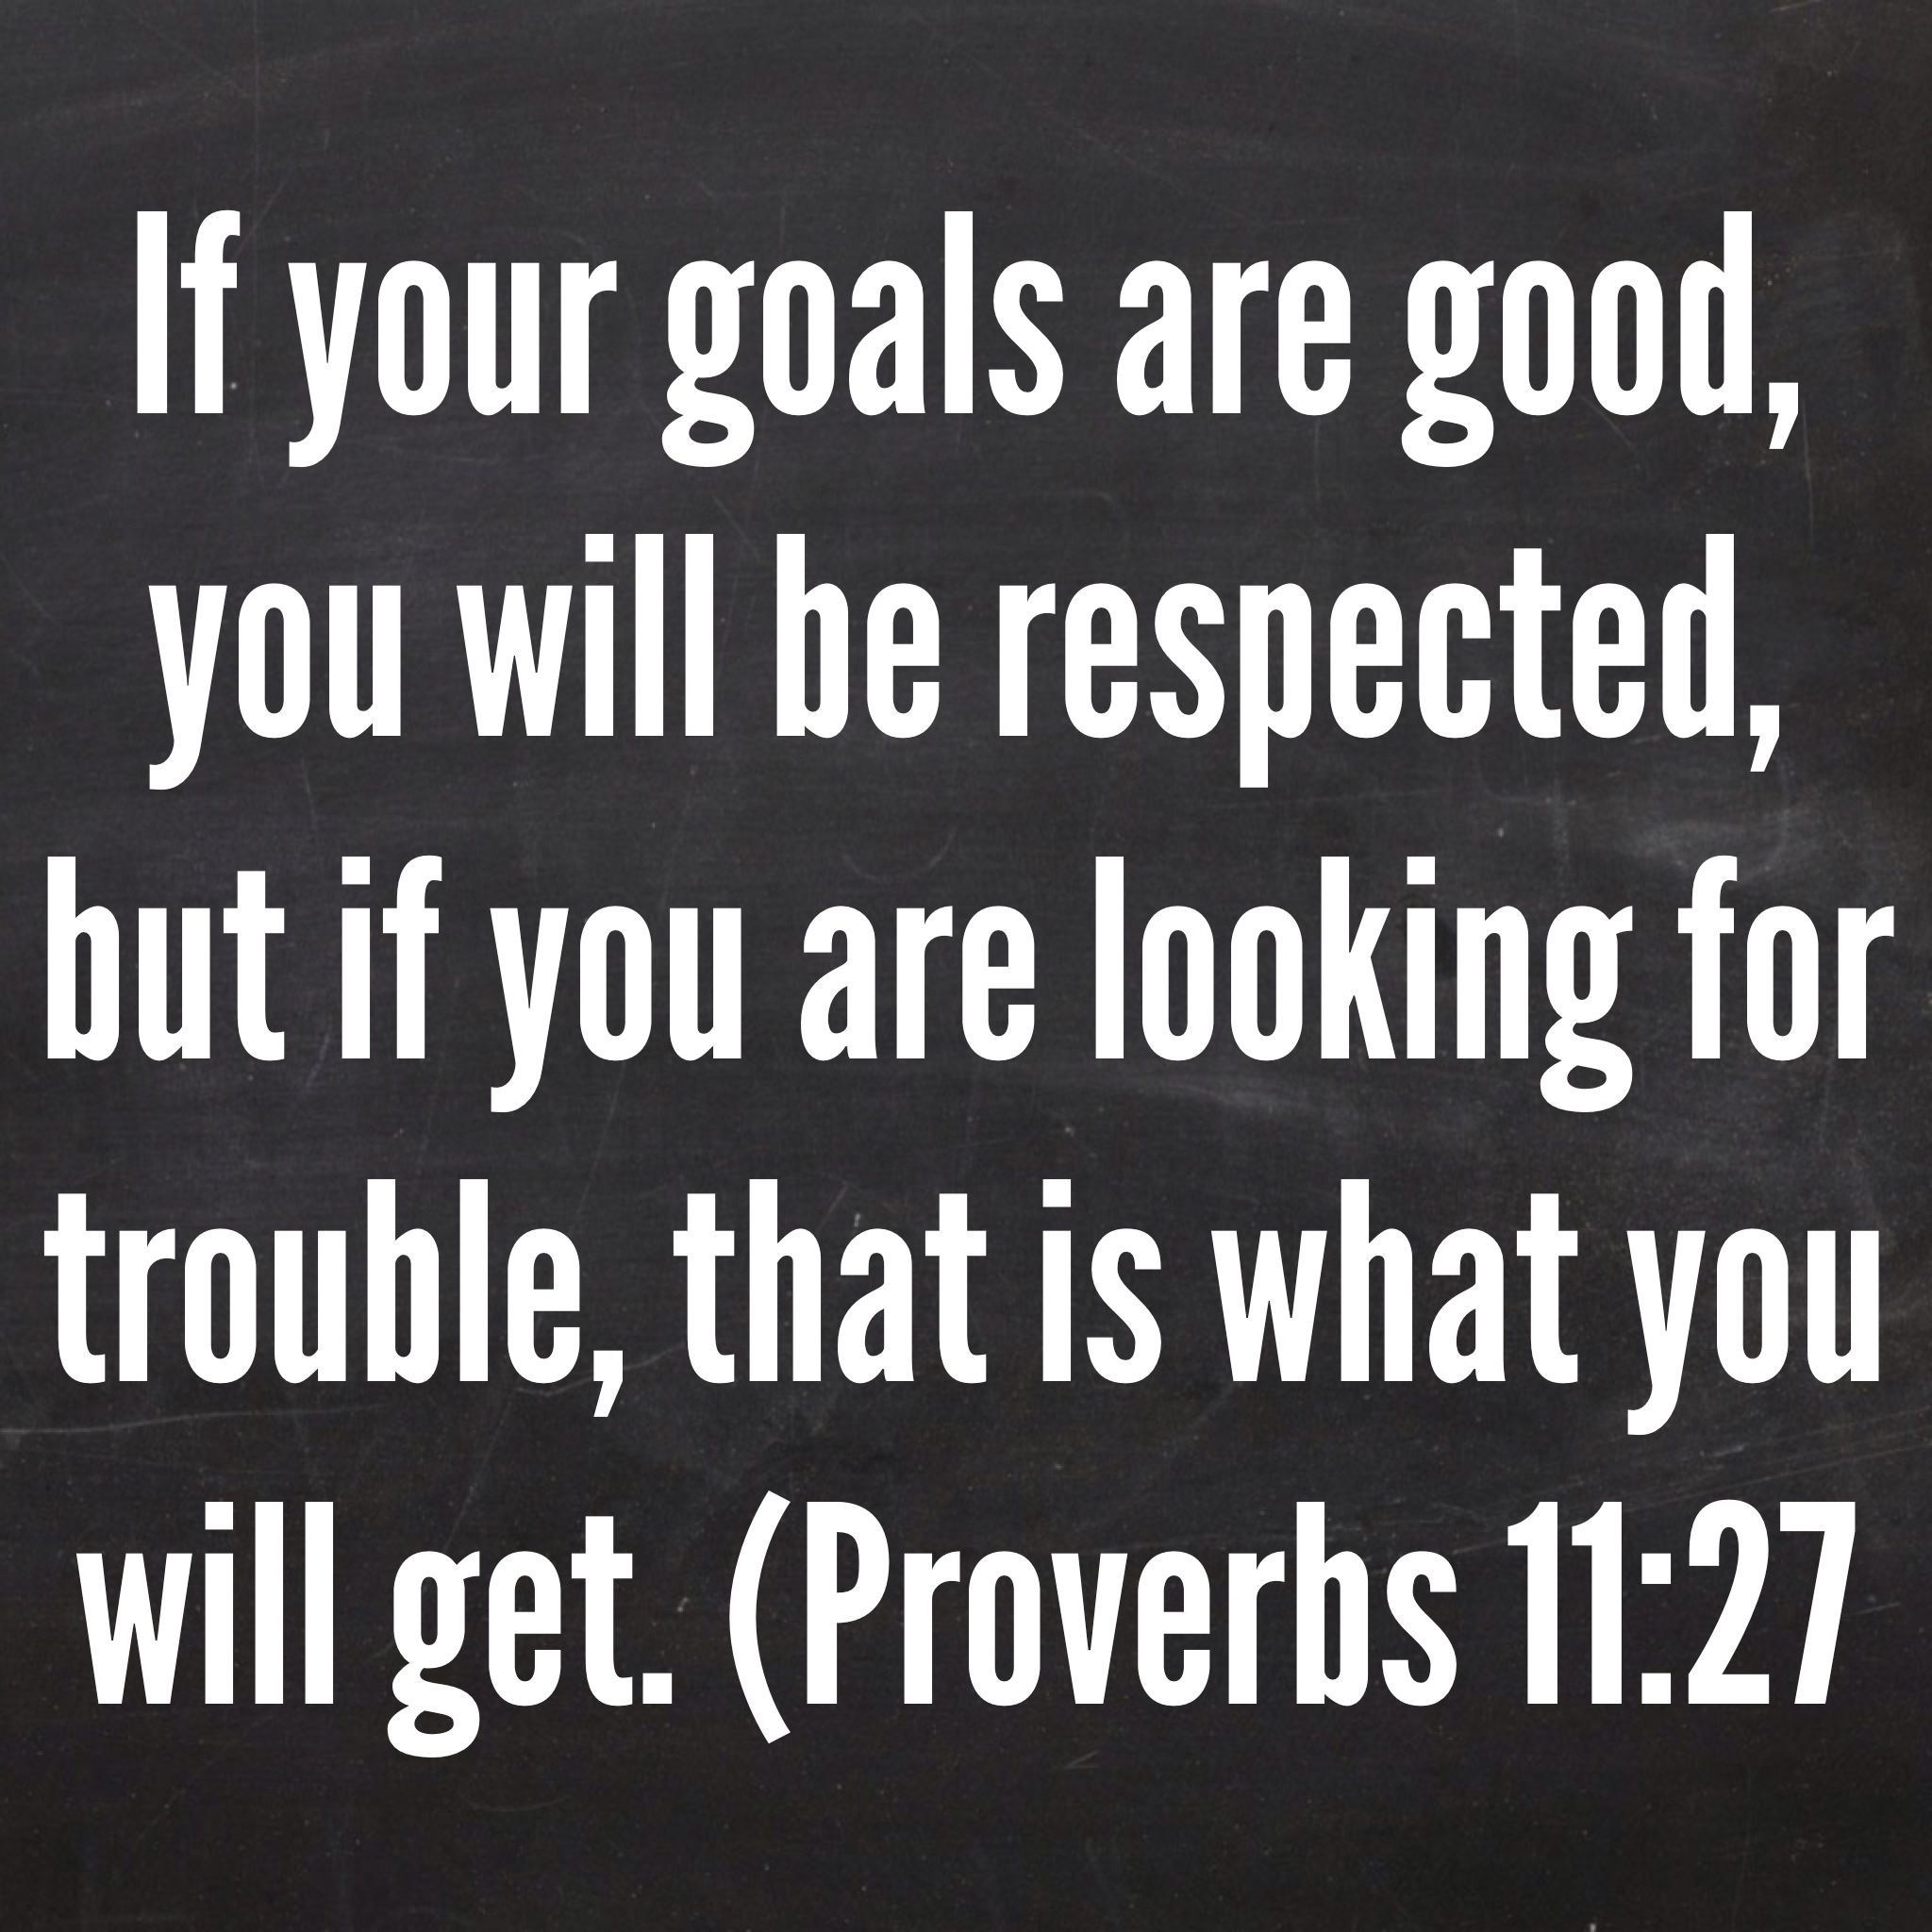 Jesus Inspirational Quotes If Your Goals Are Good You Will Be Respected But If You Are